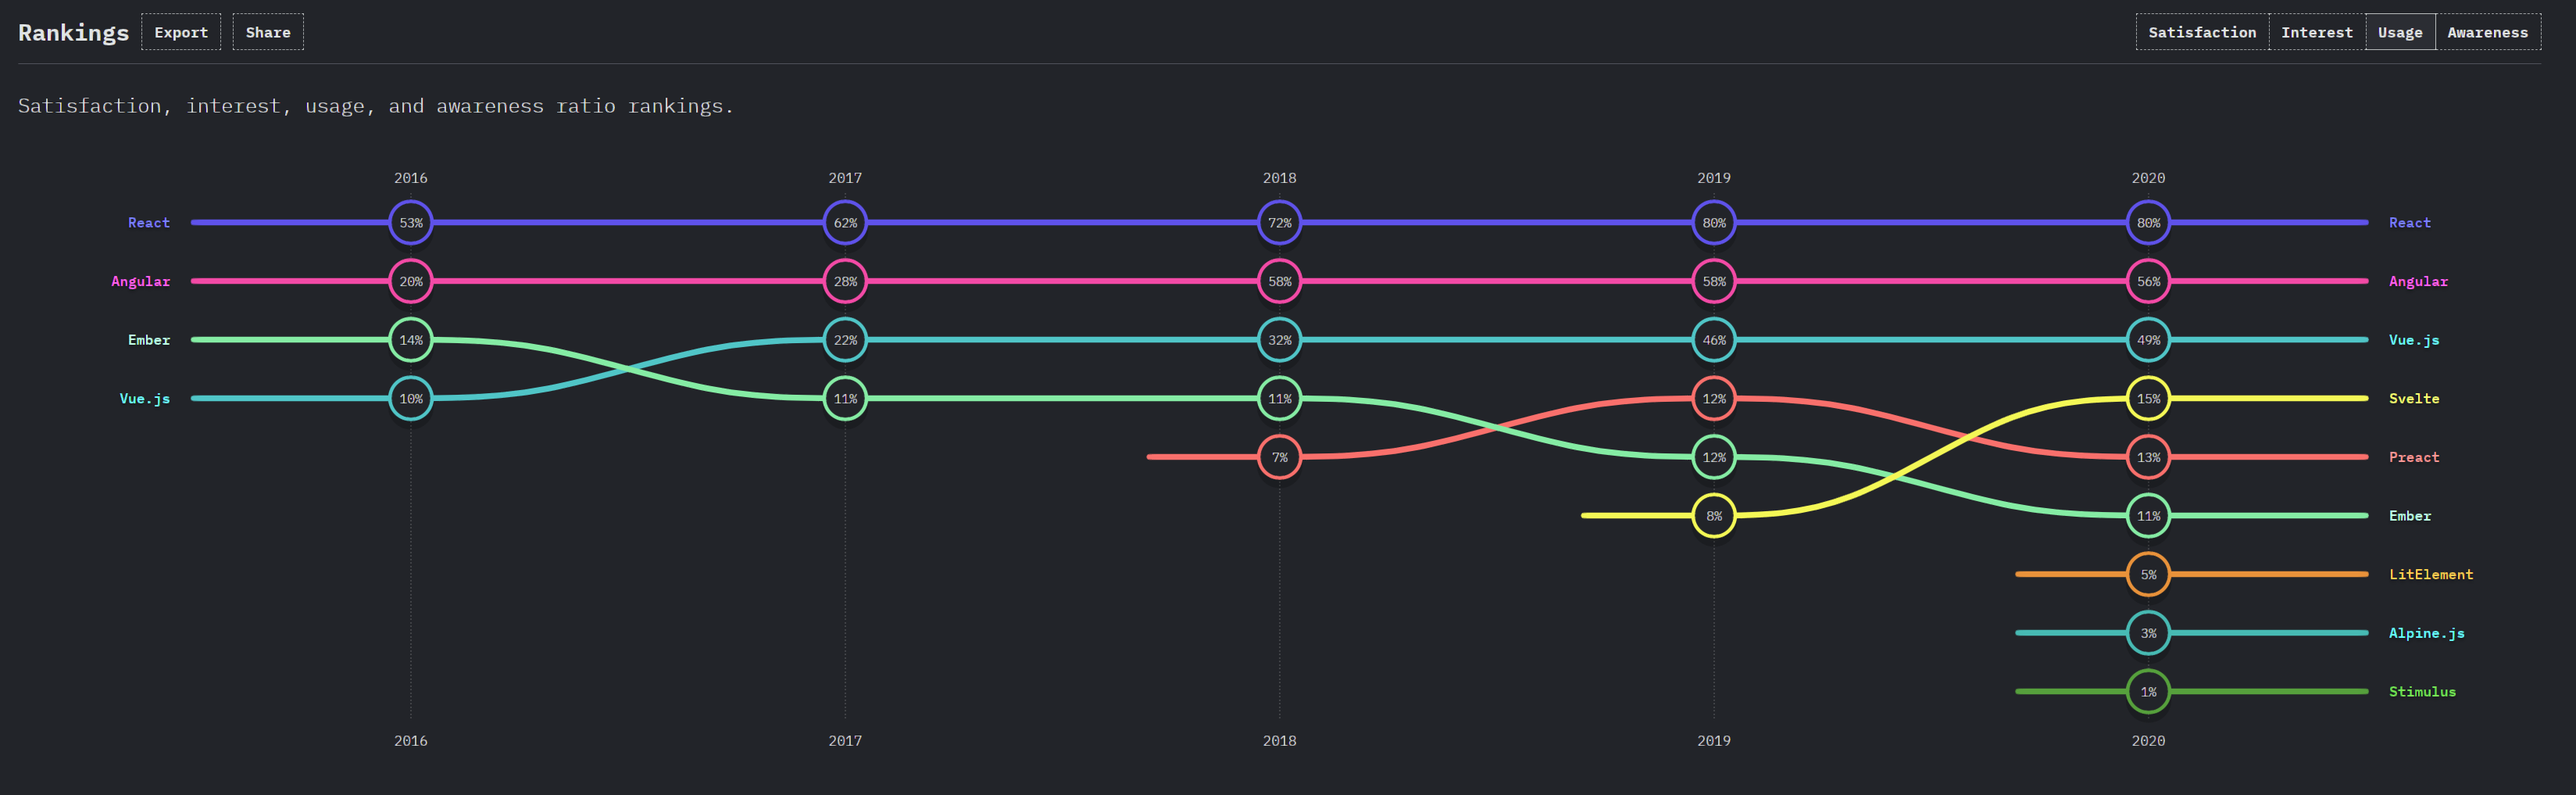 A graph showing React being the most used frontend framework.